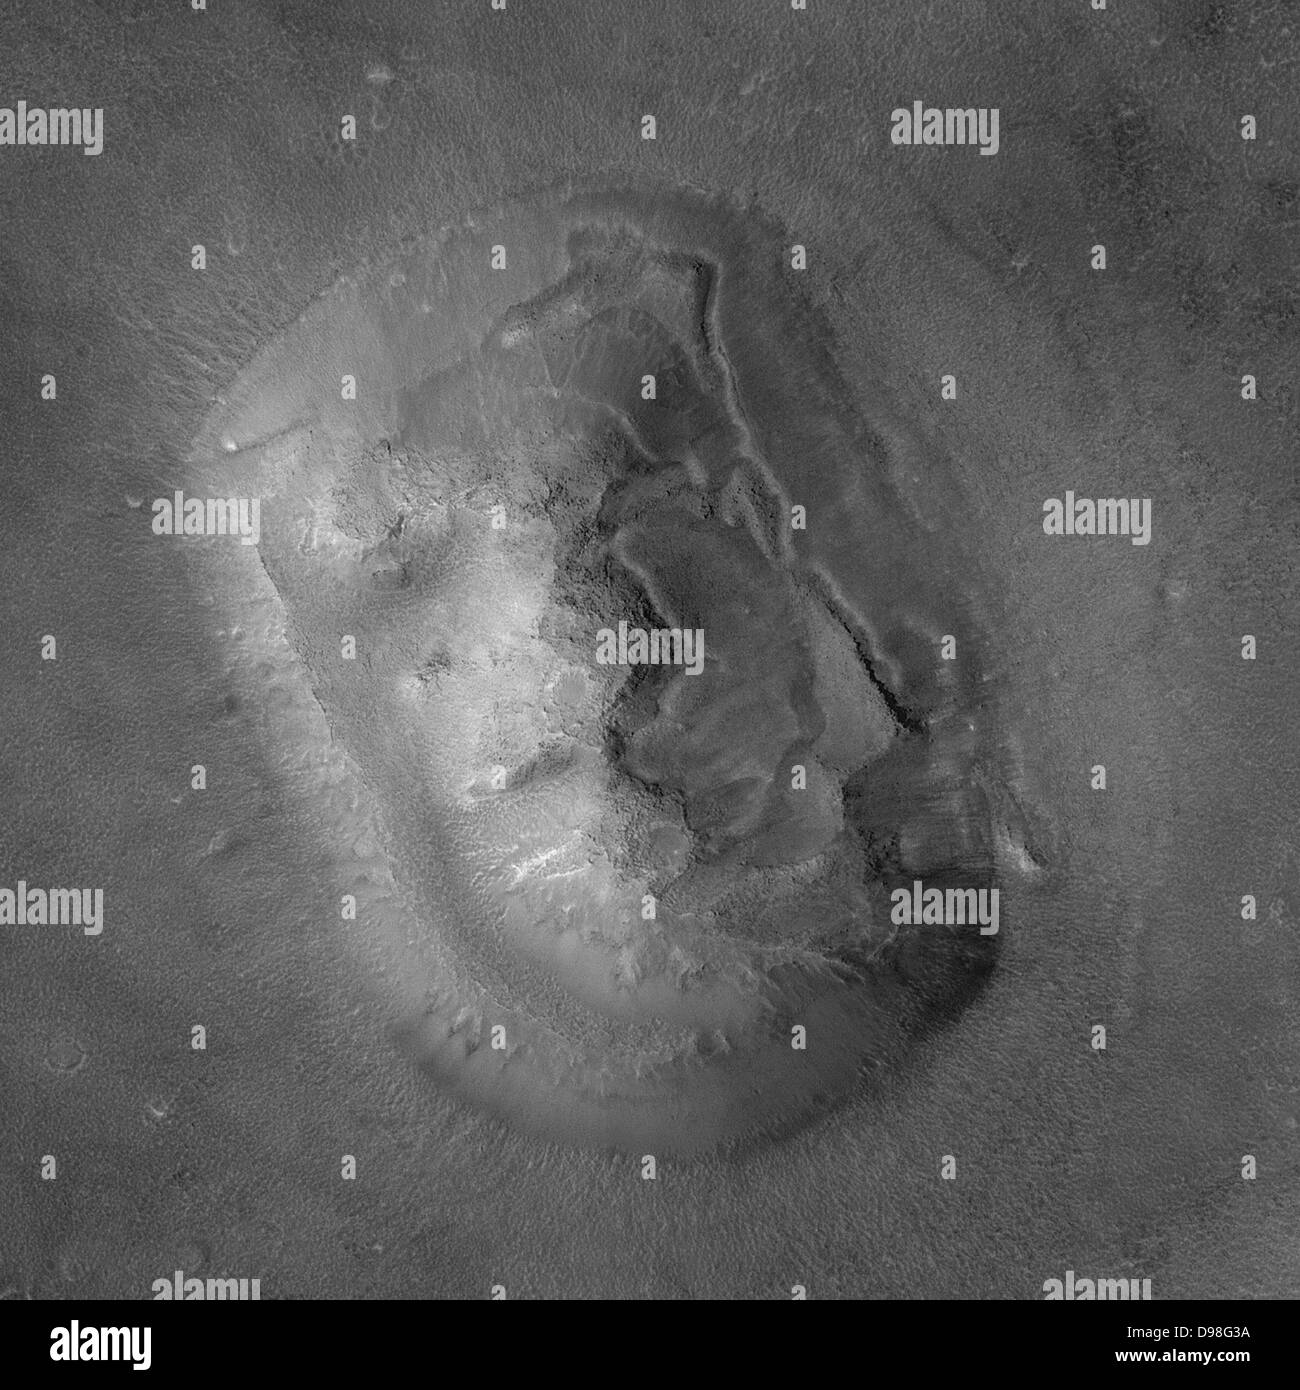 Cydonia is a region of Mars containing several hills, which has attracted attention because one of the hills resembles - Stock Image